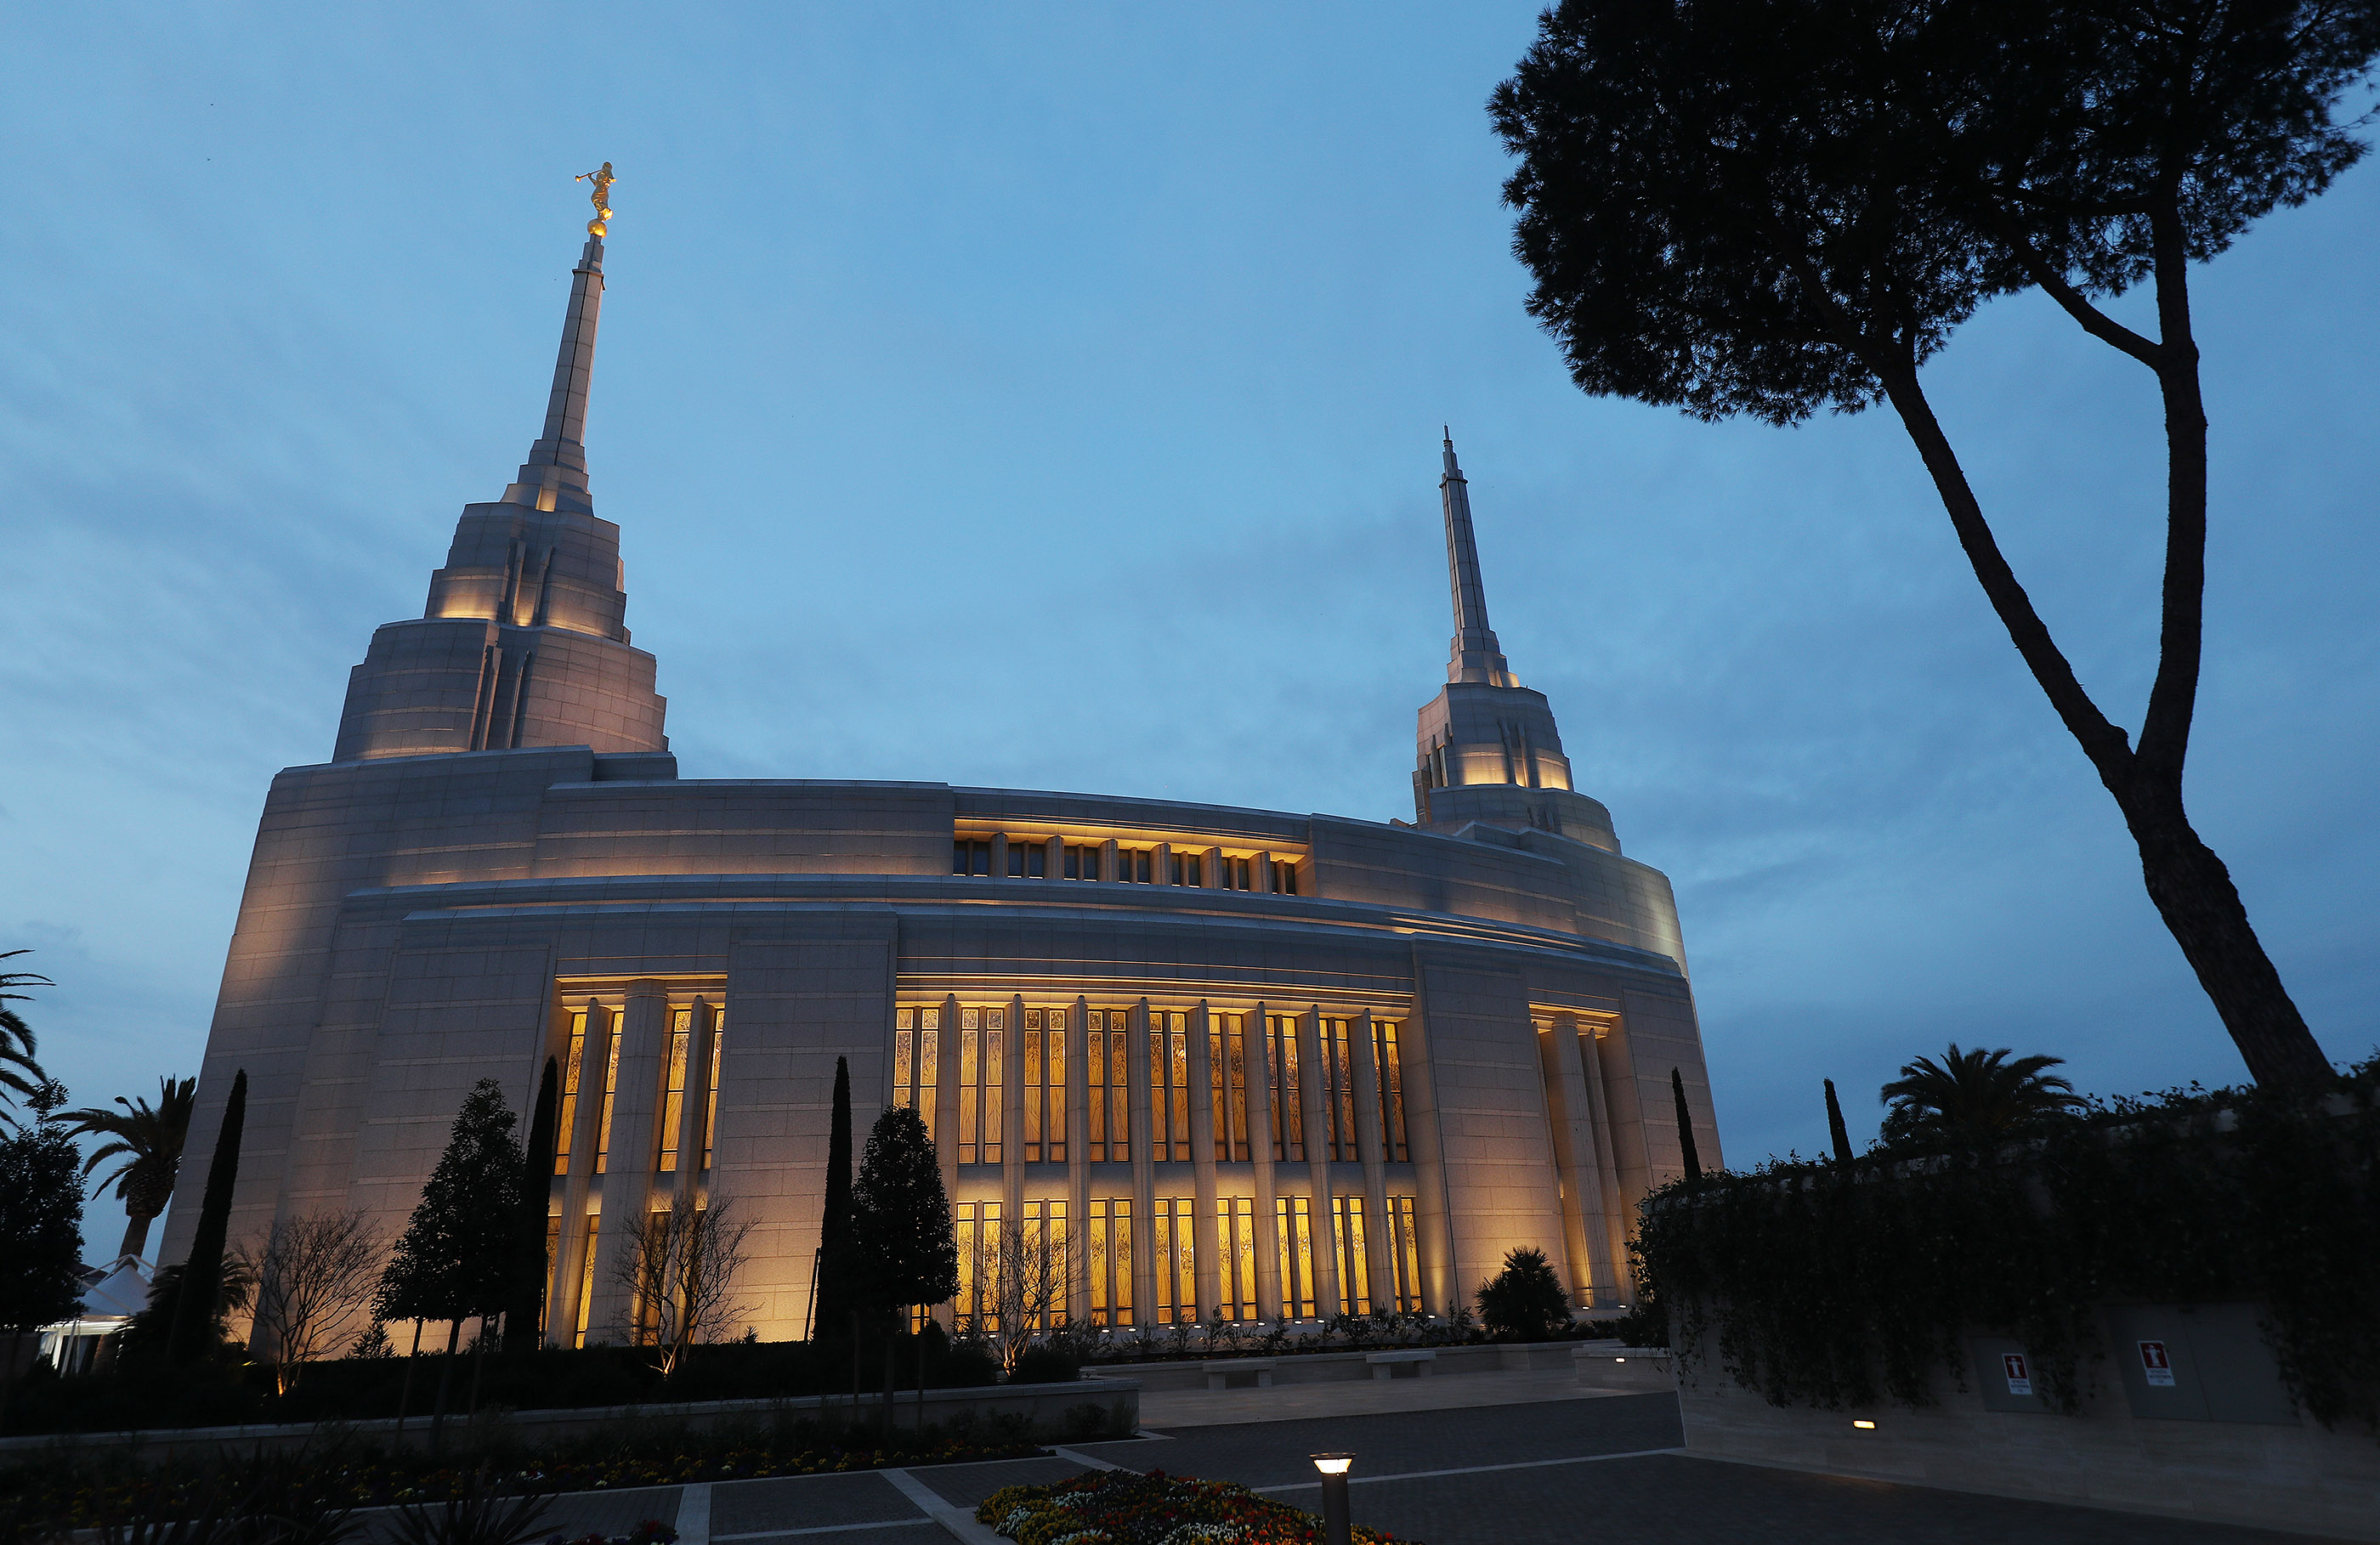 The Rome Italy Temple of The Church of Jesus Christ of Latter-day Saints at sunrise in Rome, Italy, on Friday, March 8, 2019.